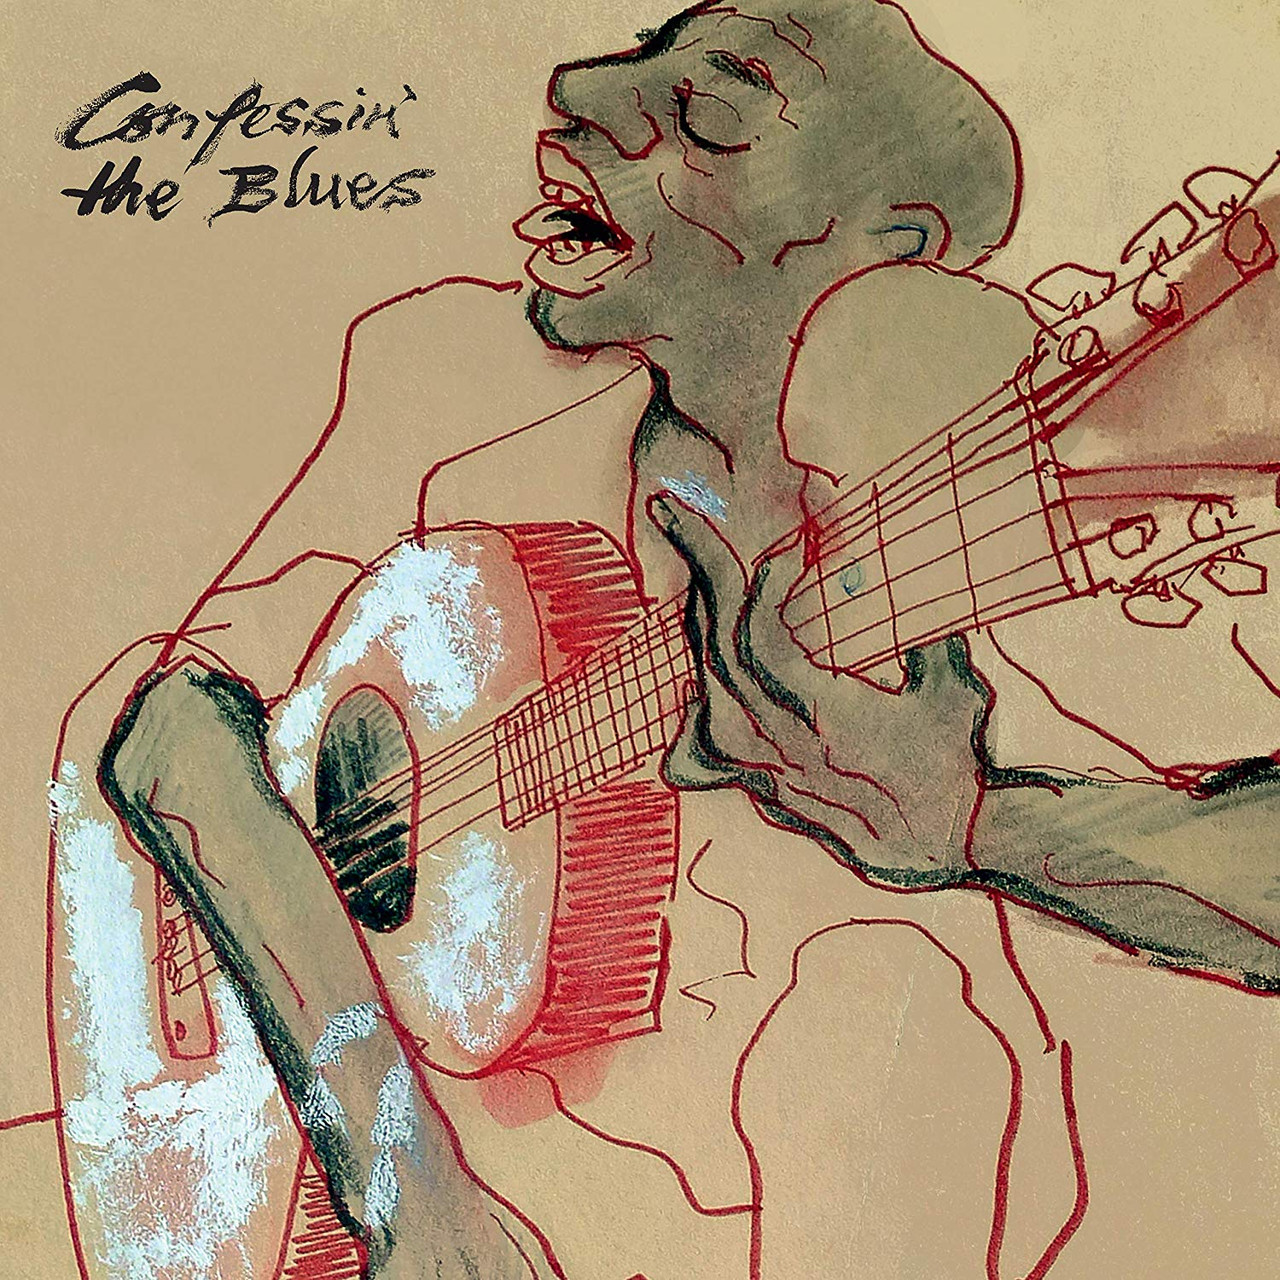 Confessin' the Blues - 2 CD SET - 42 SONGS